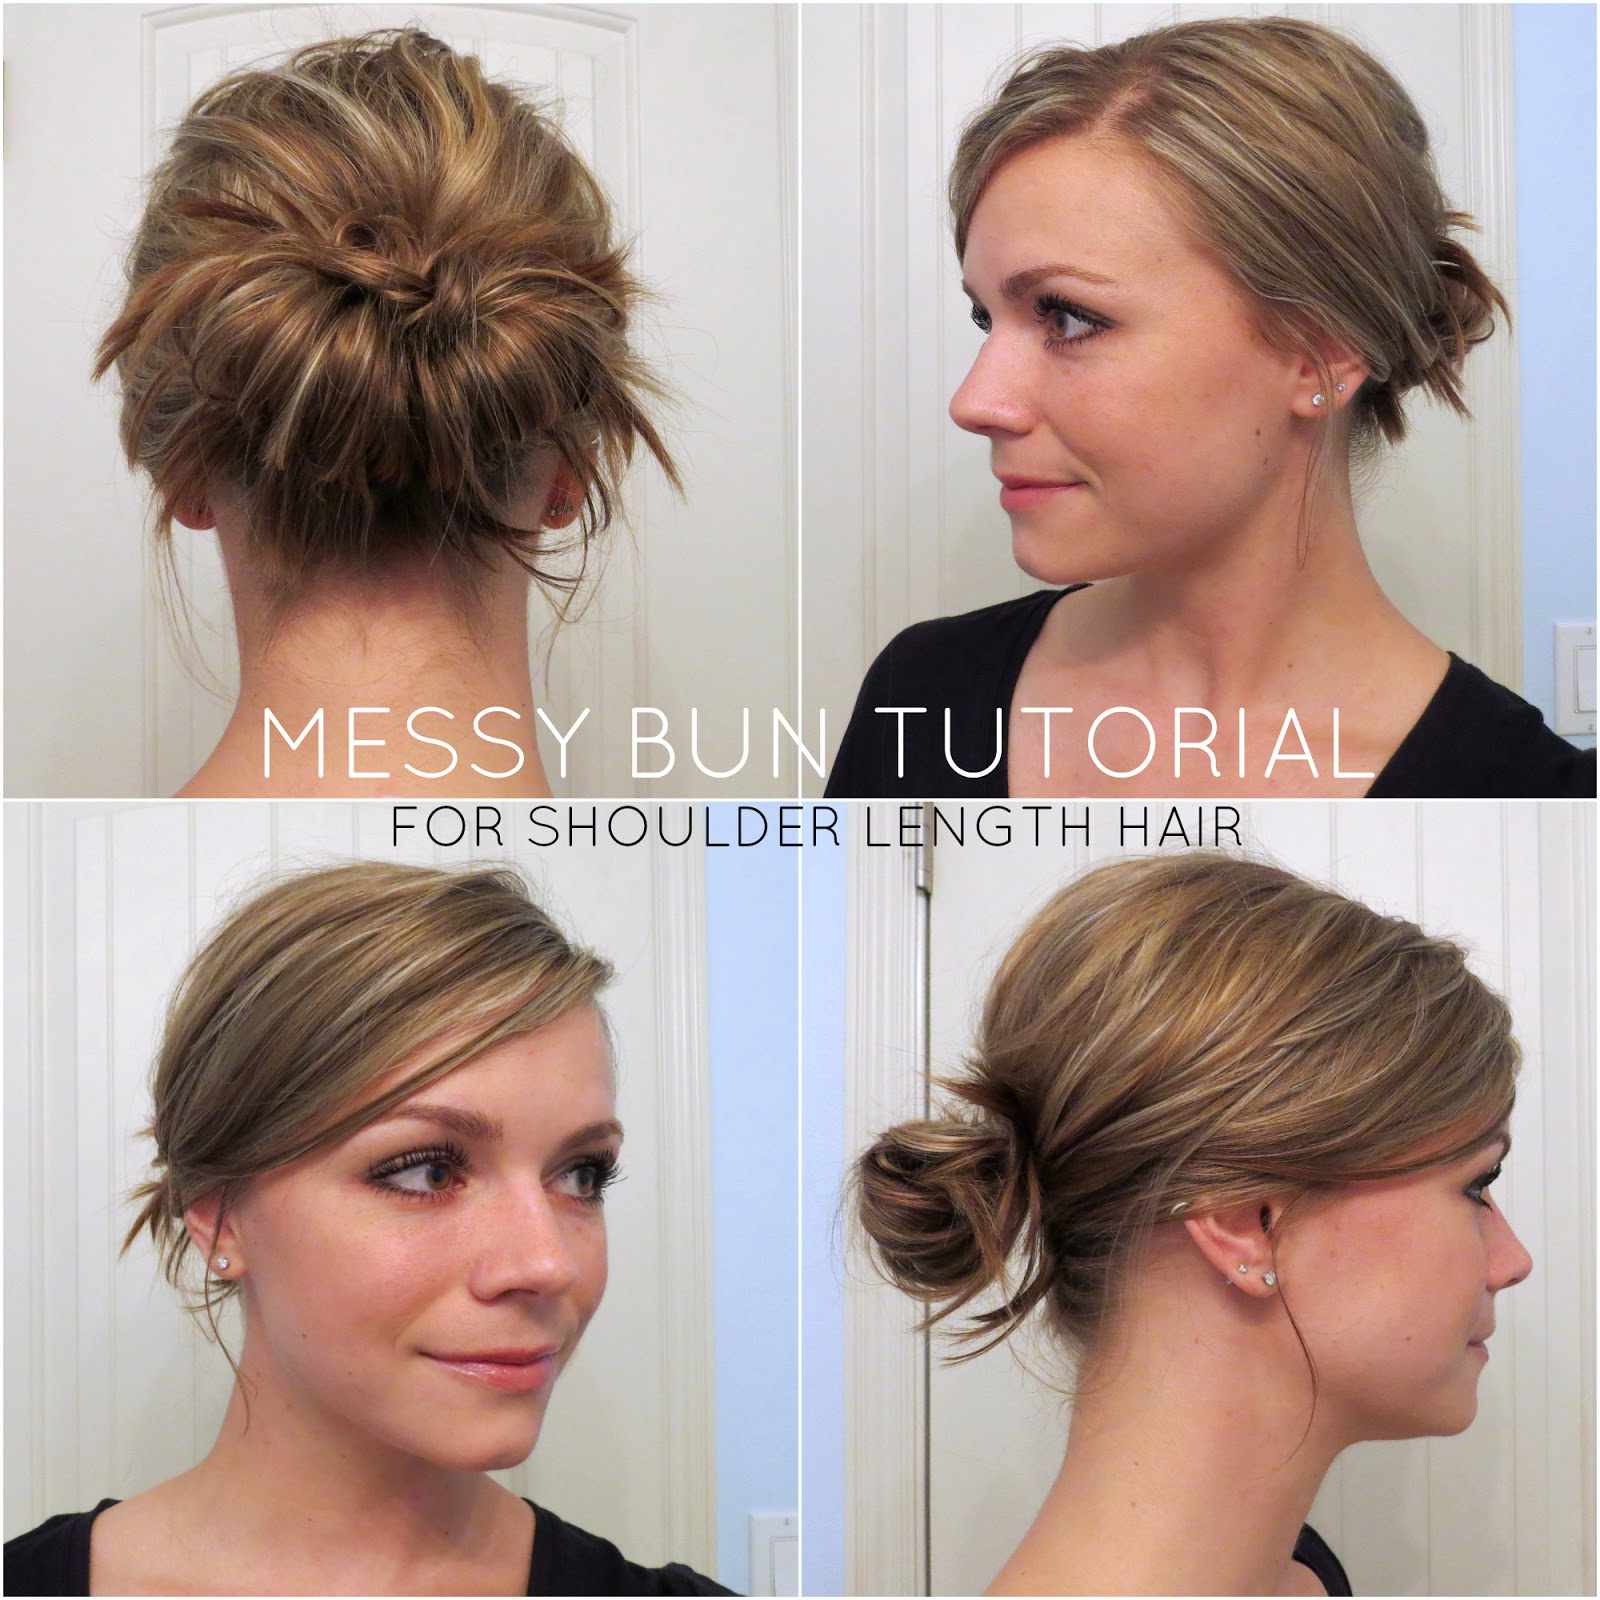 bye bye beehive │ a hairstyle blog: messy bun for shoulder